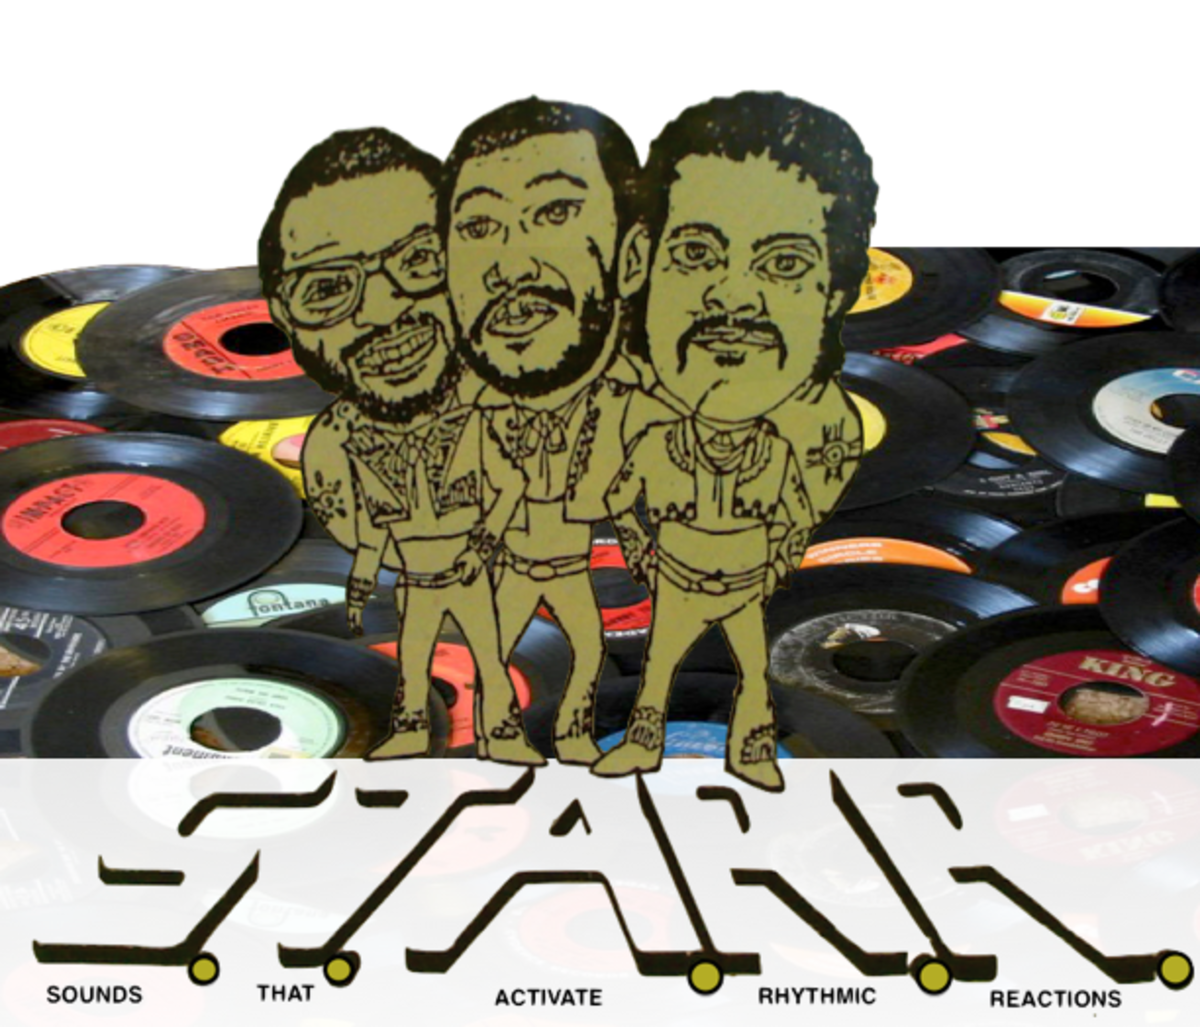 "When the 45 rpm vinyl record became a collectors item, S.T.A.R.R. Band and many other talented artists, whose work had been mostly ""unsung,"" were unveiled, discovered, rediscovered, and enjoyed."